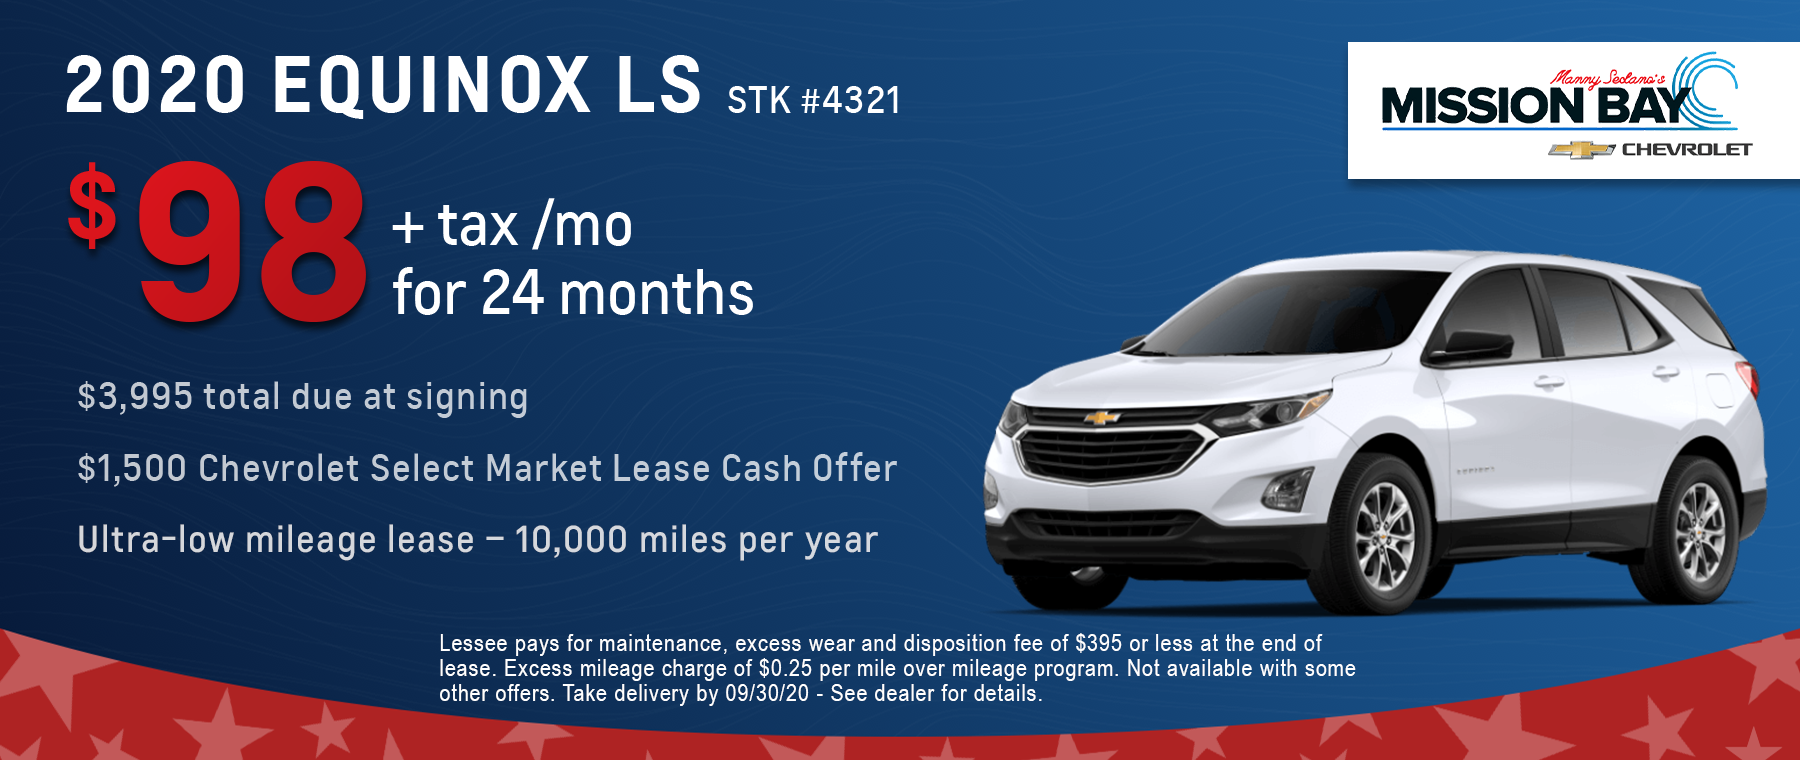 New 2020 Chevy Equinox LS lease deals at San Diego Chevrolet dealership